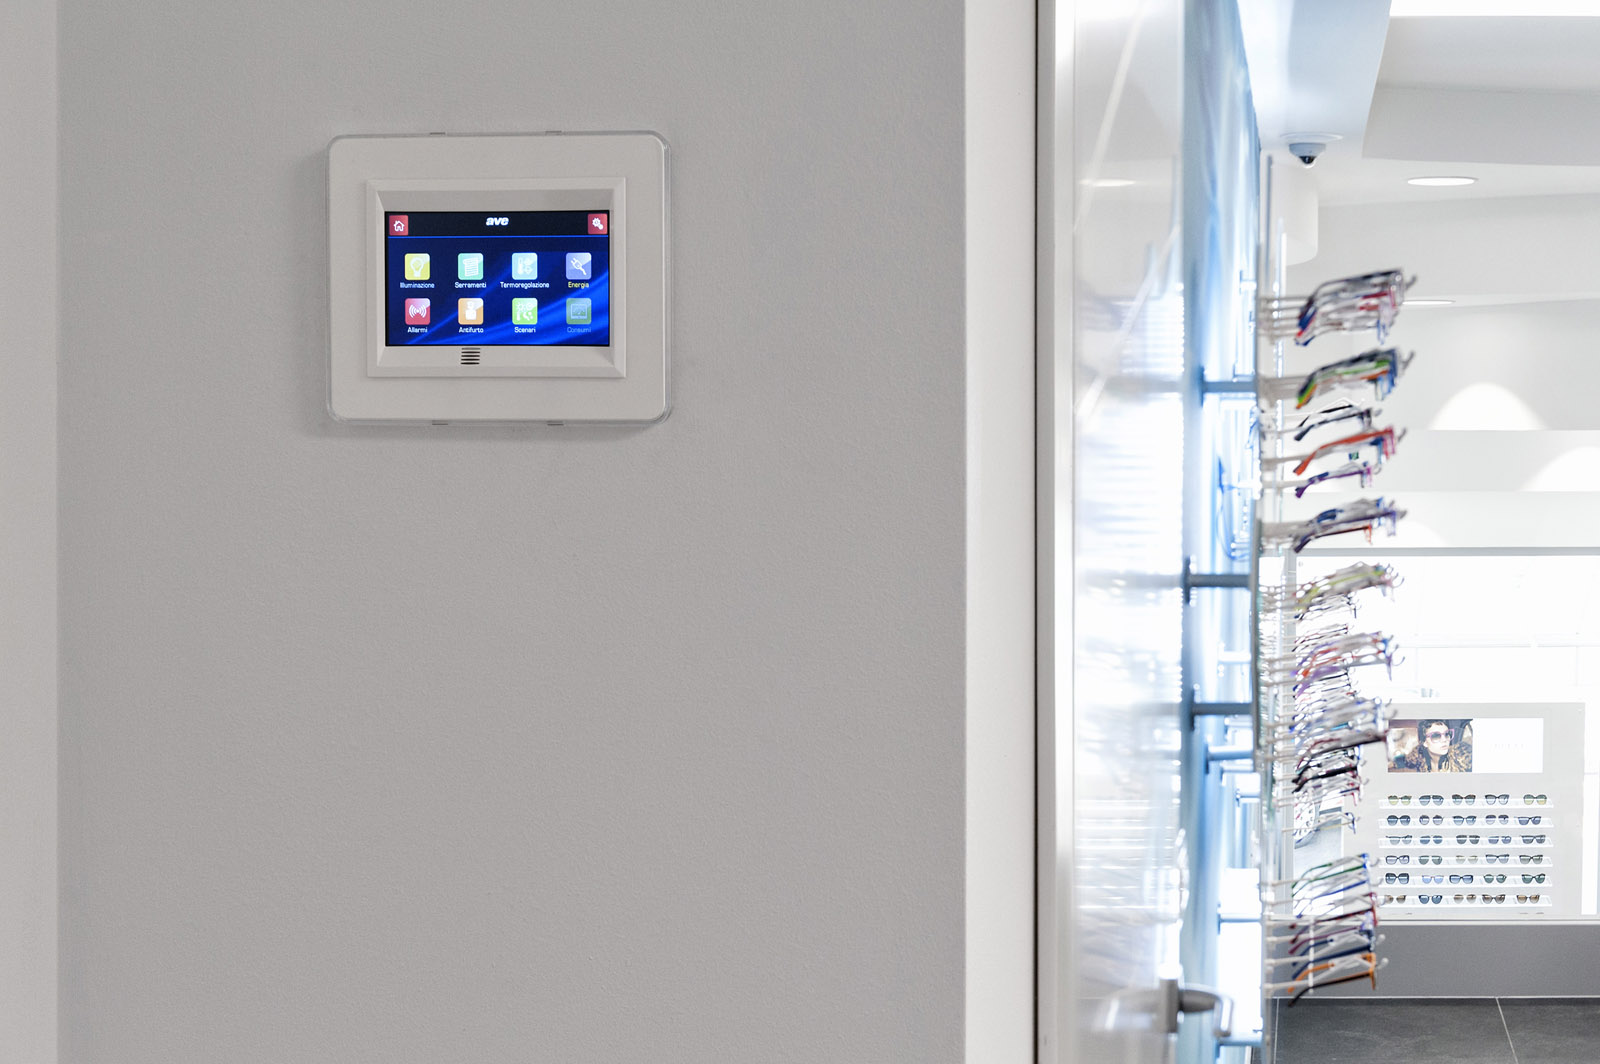 Touch Screen for building automation